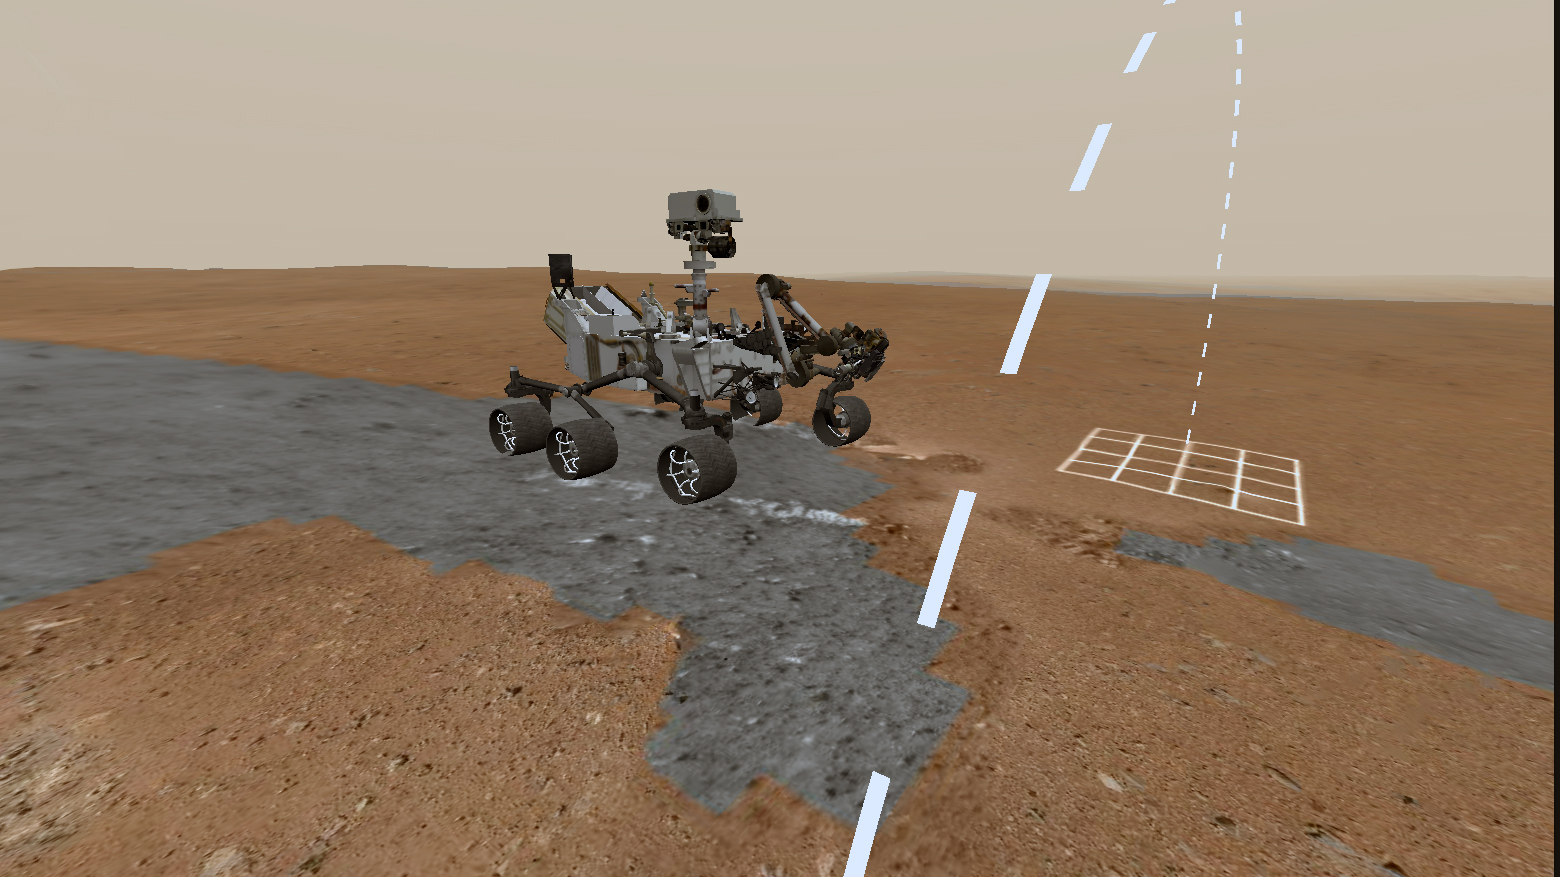 Using imagery from NASA's Curiosity rover, users can explore Mars.